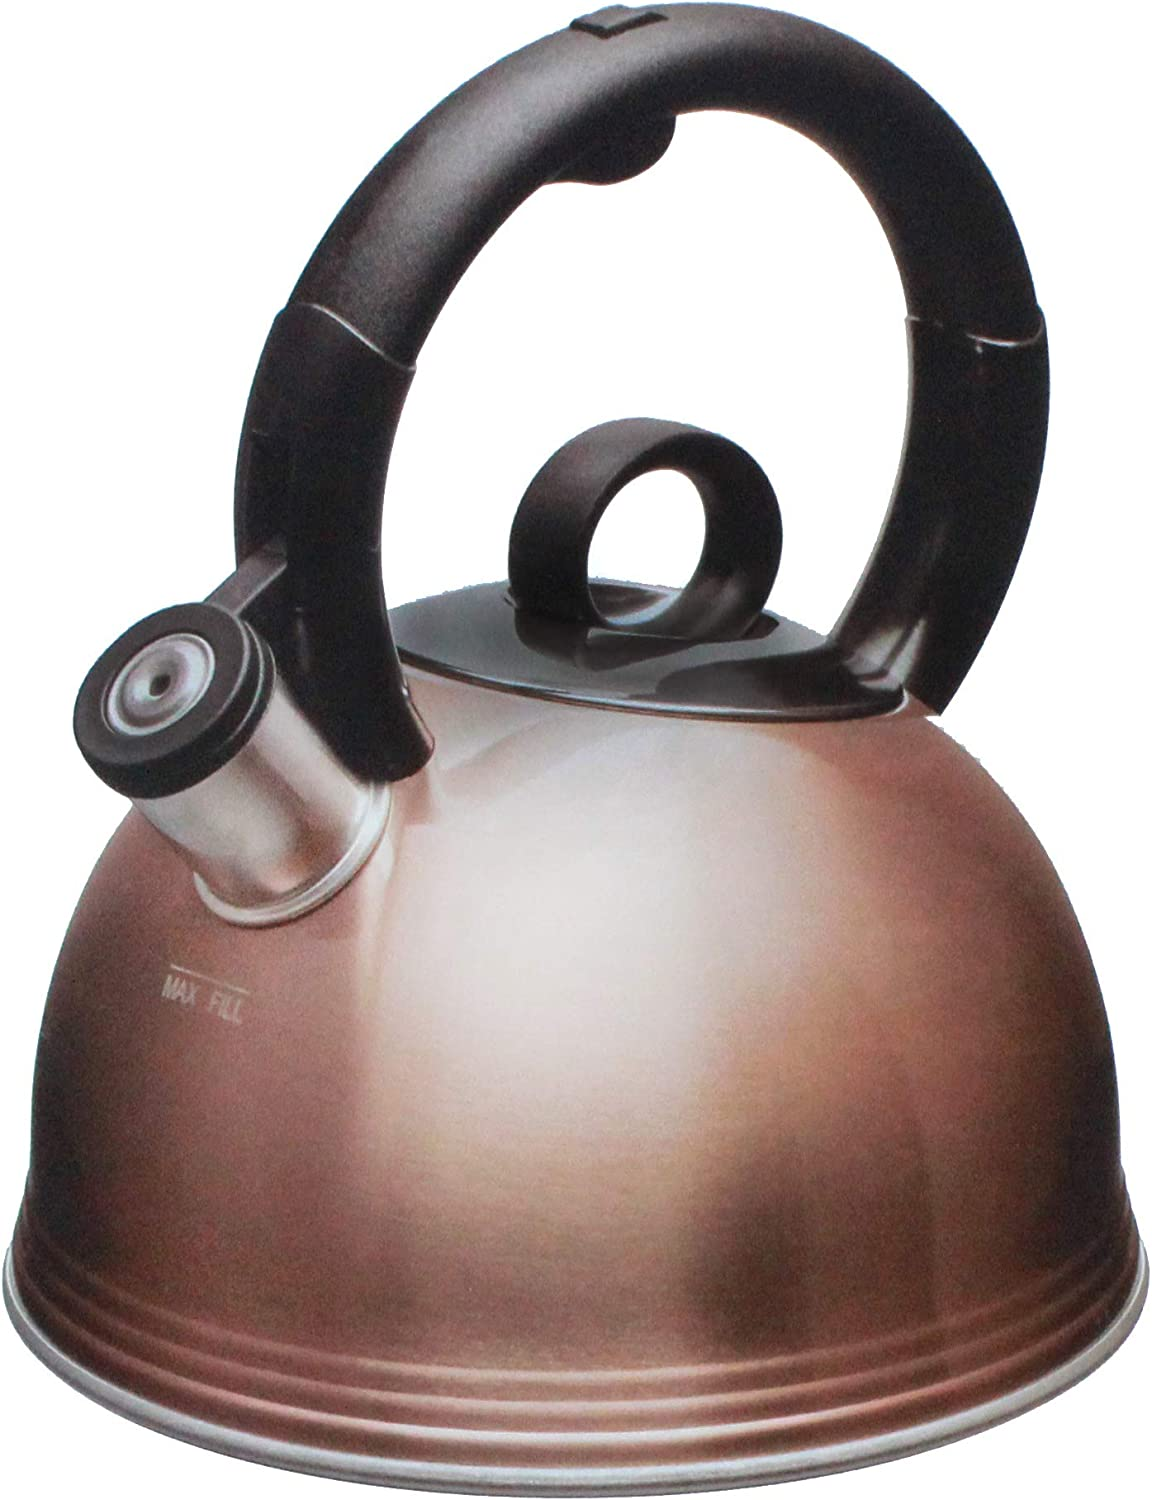 Copco 5263156 Stainless Steel 2.1 Quart Whistling Tea Kettle, Glossy Copper Finish